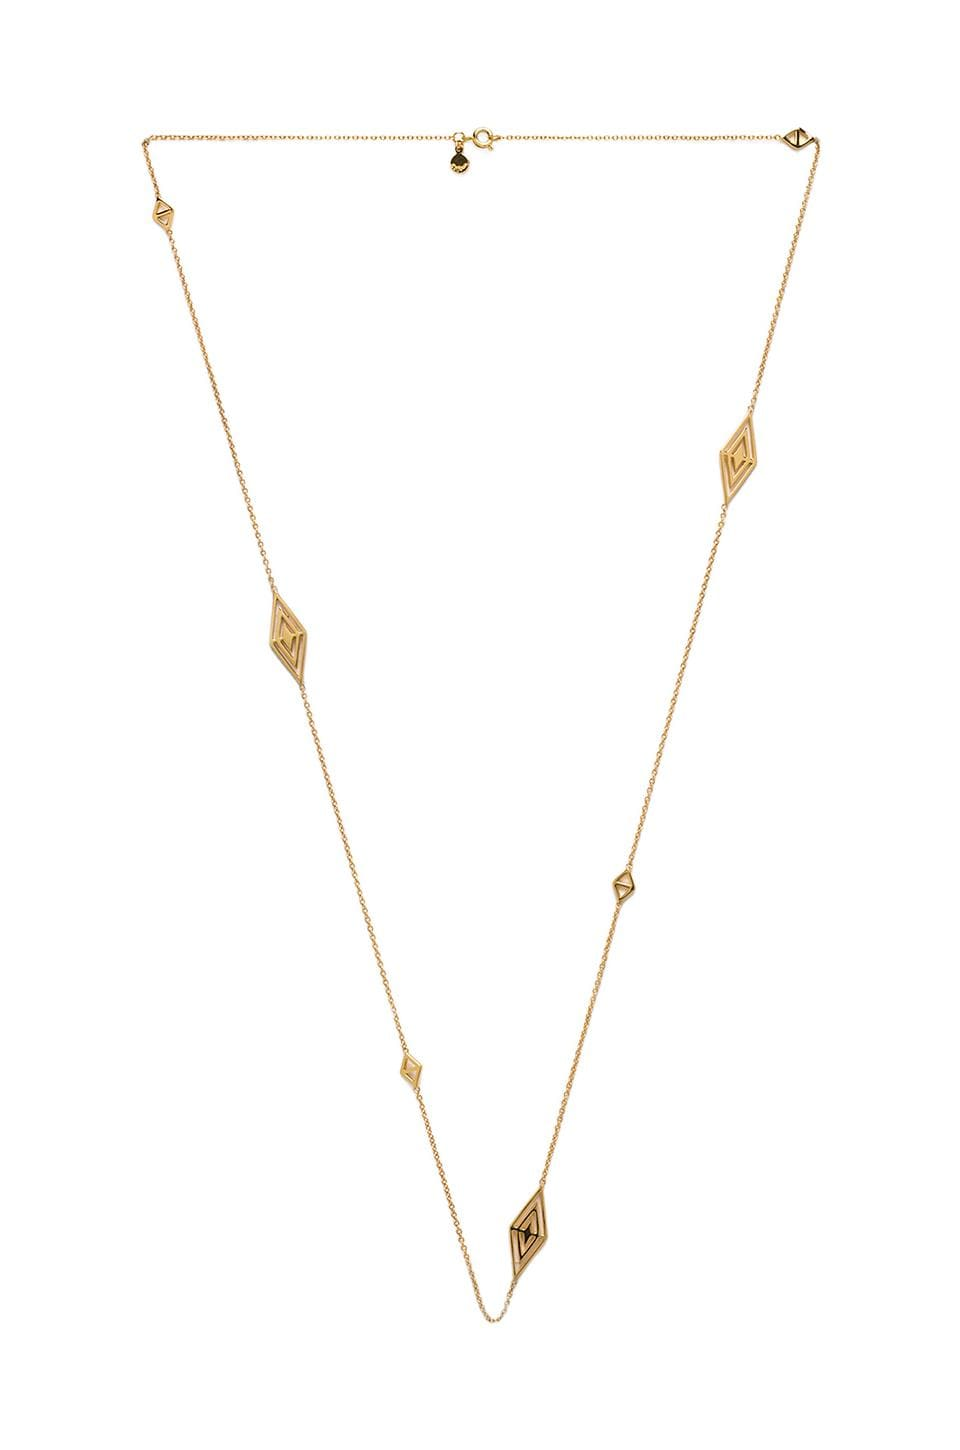 gorjana Tira Wrap Necklace in Gold